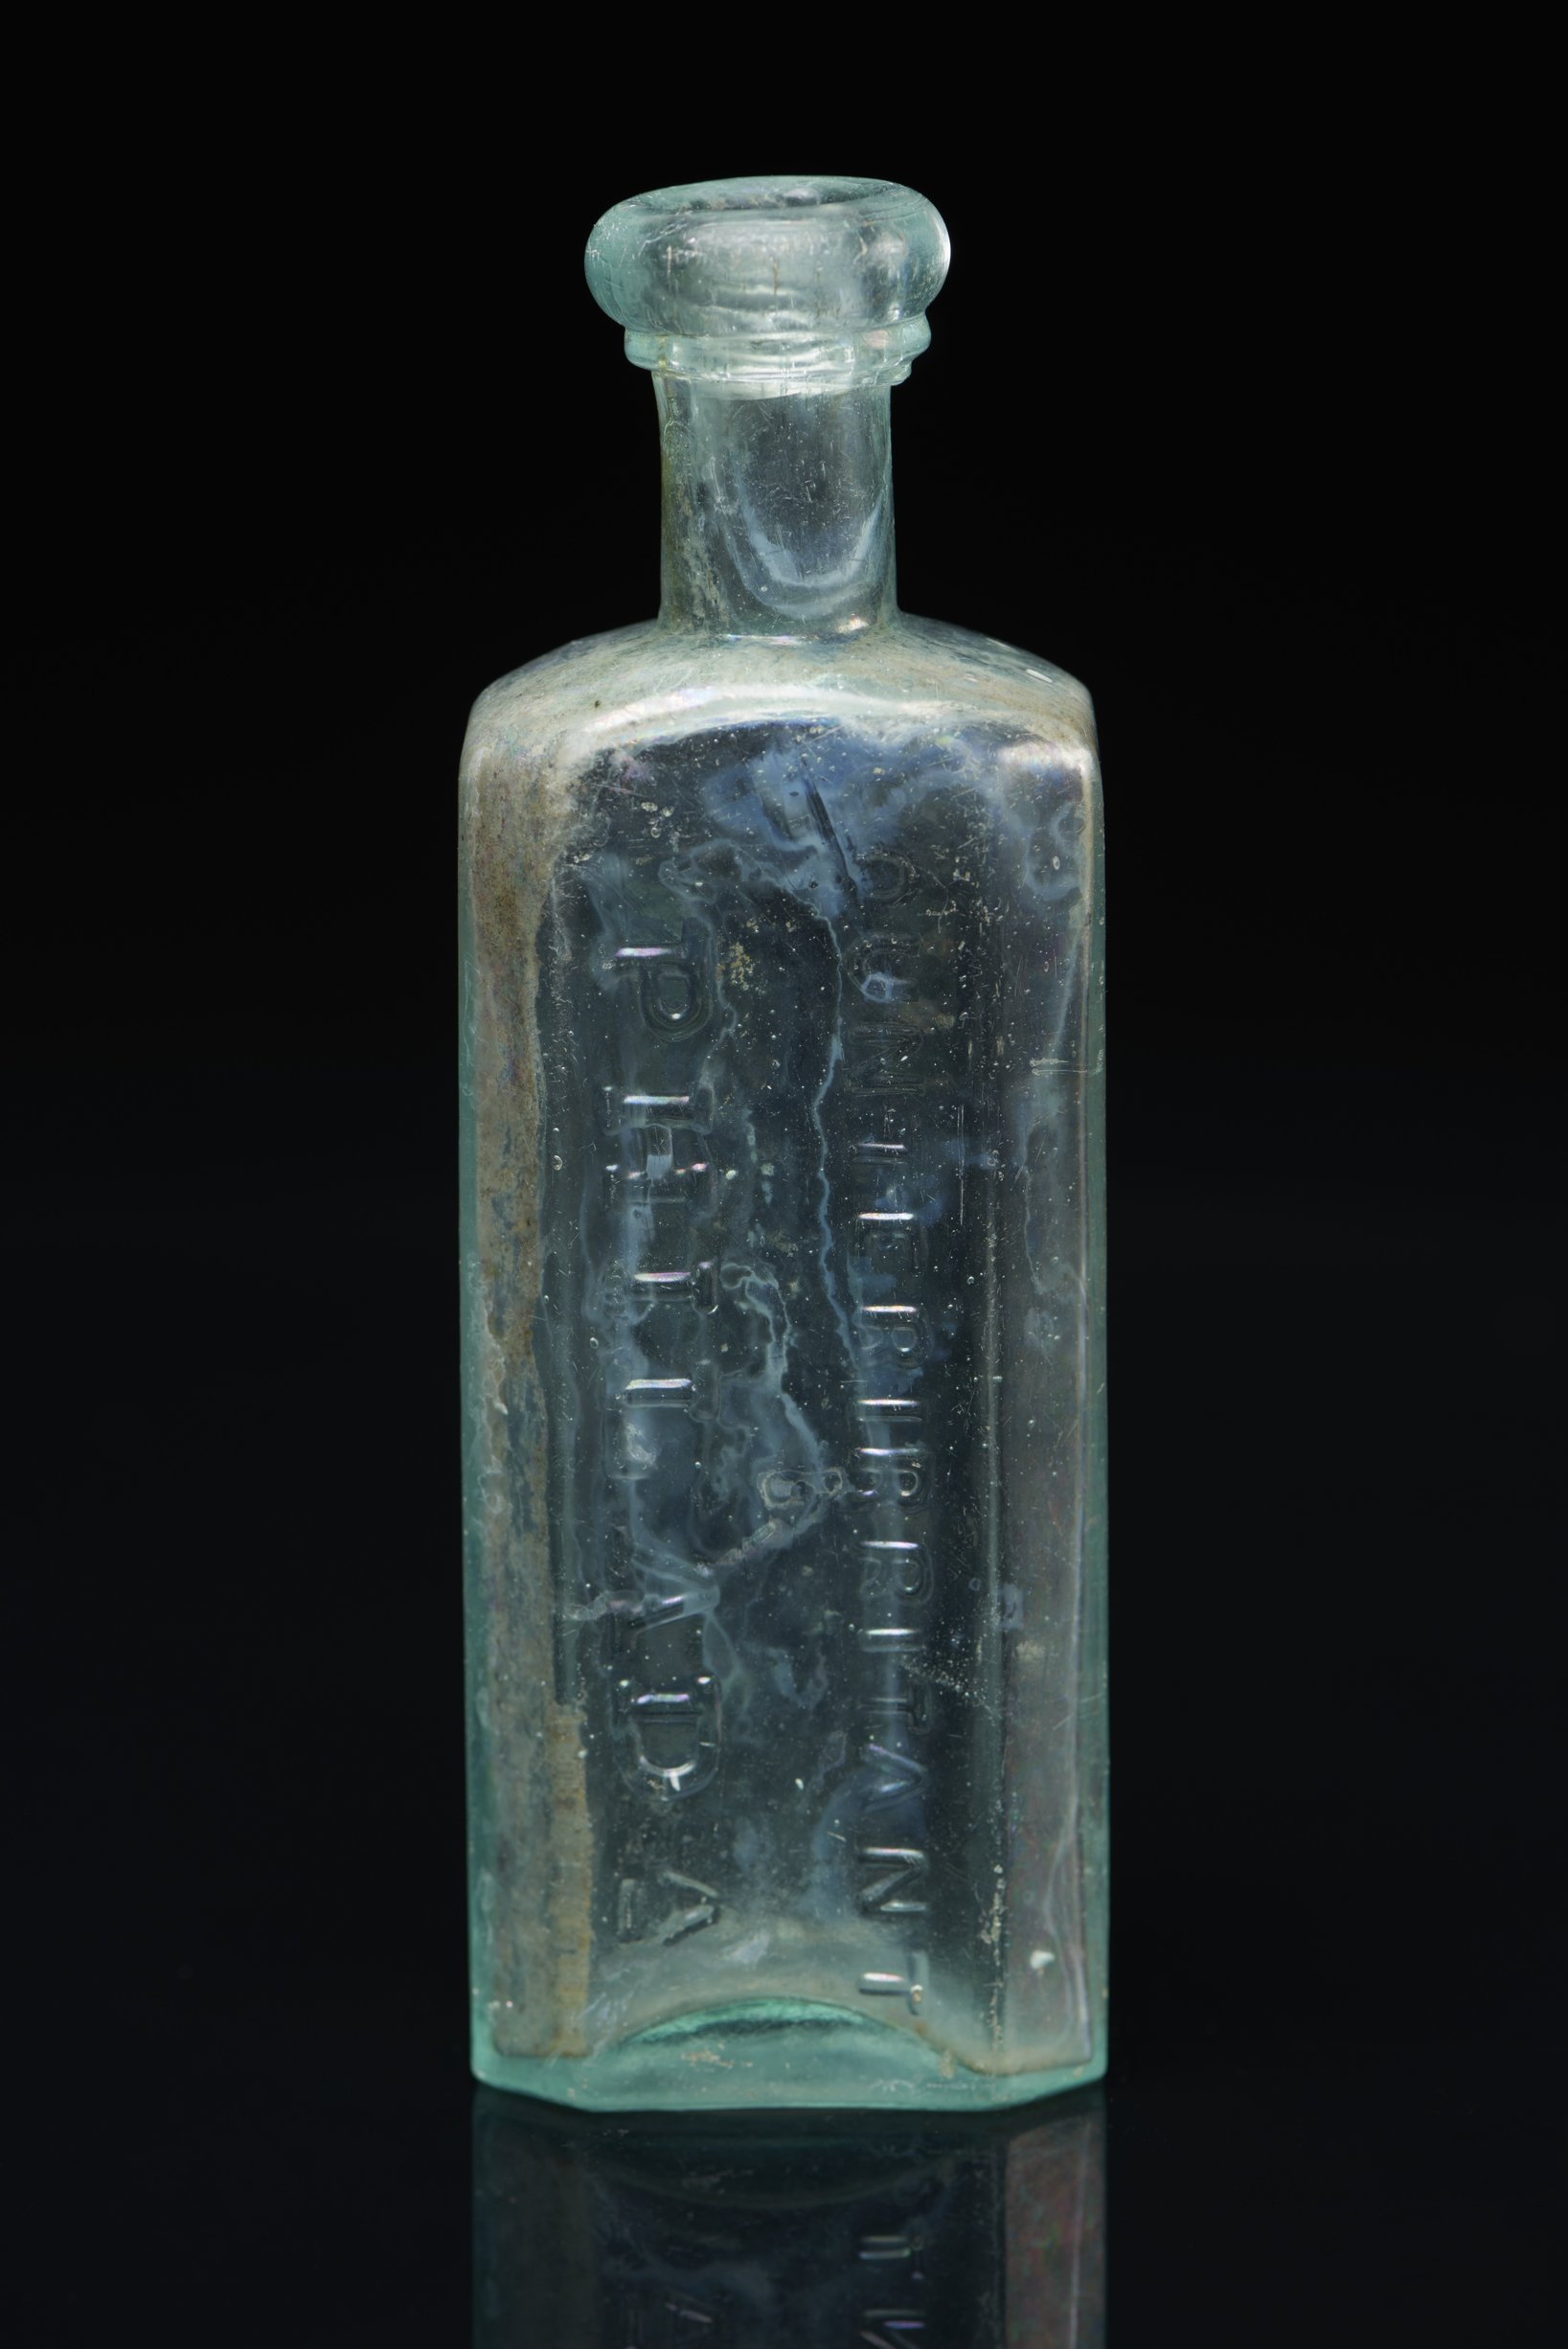 Dr. D. Jayne Liniment or Counterirritant Bottle from the Iowa and Sac and Fox Mission, 14DP384 - 1